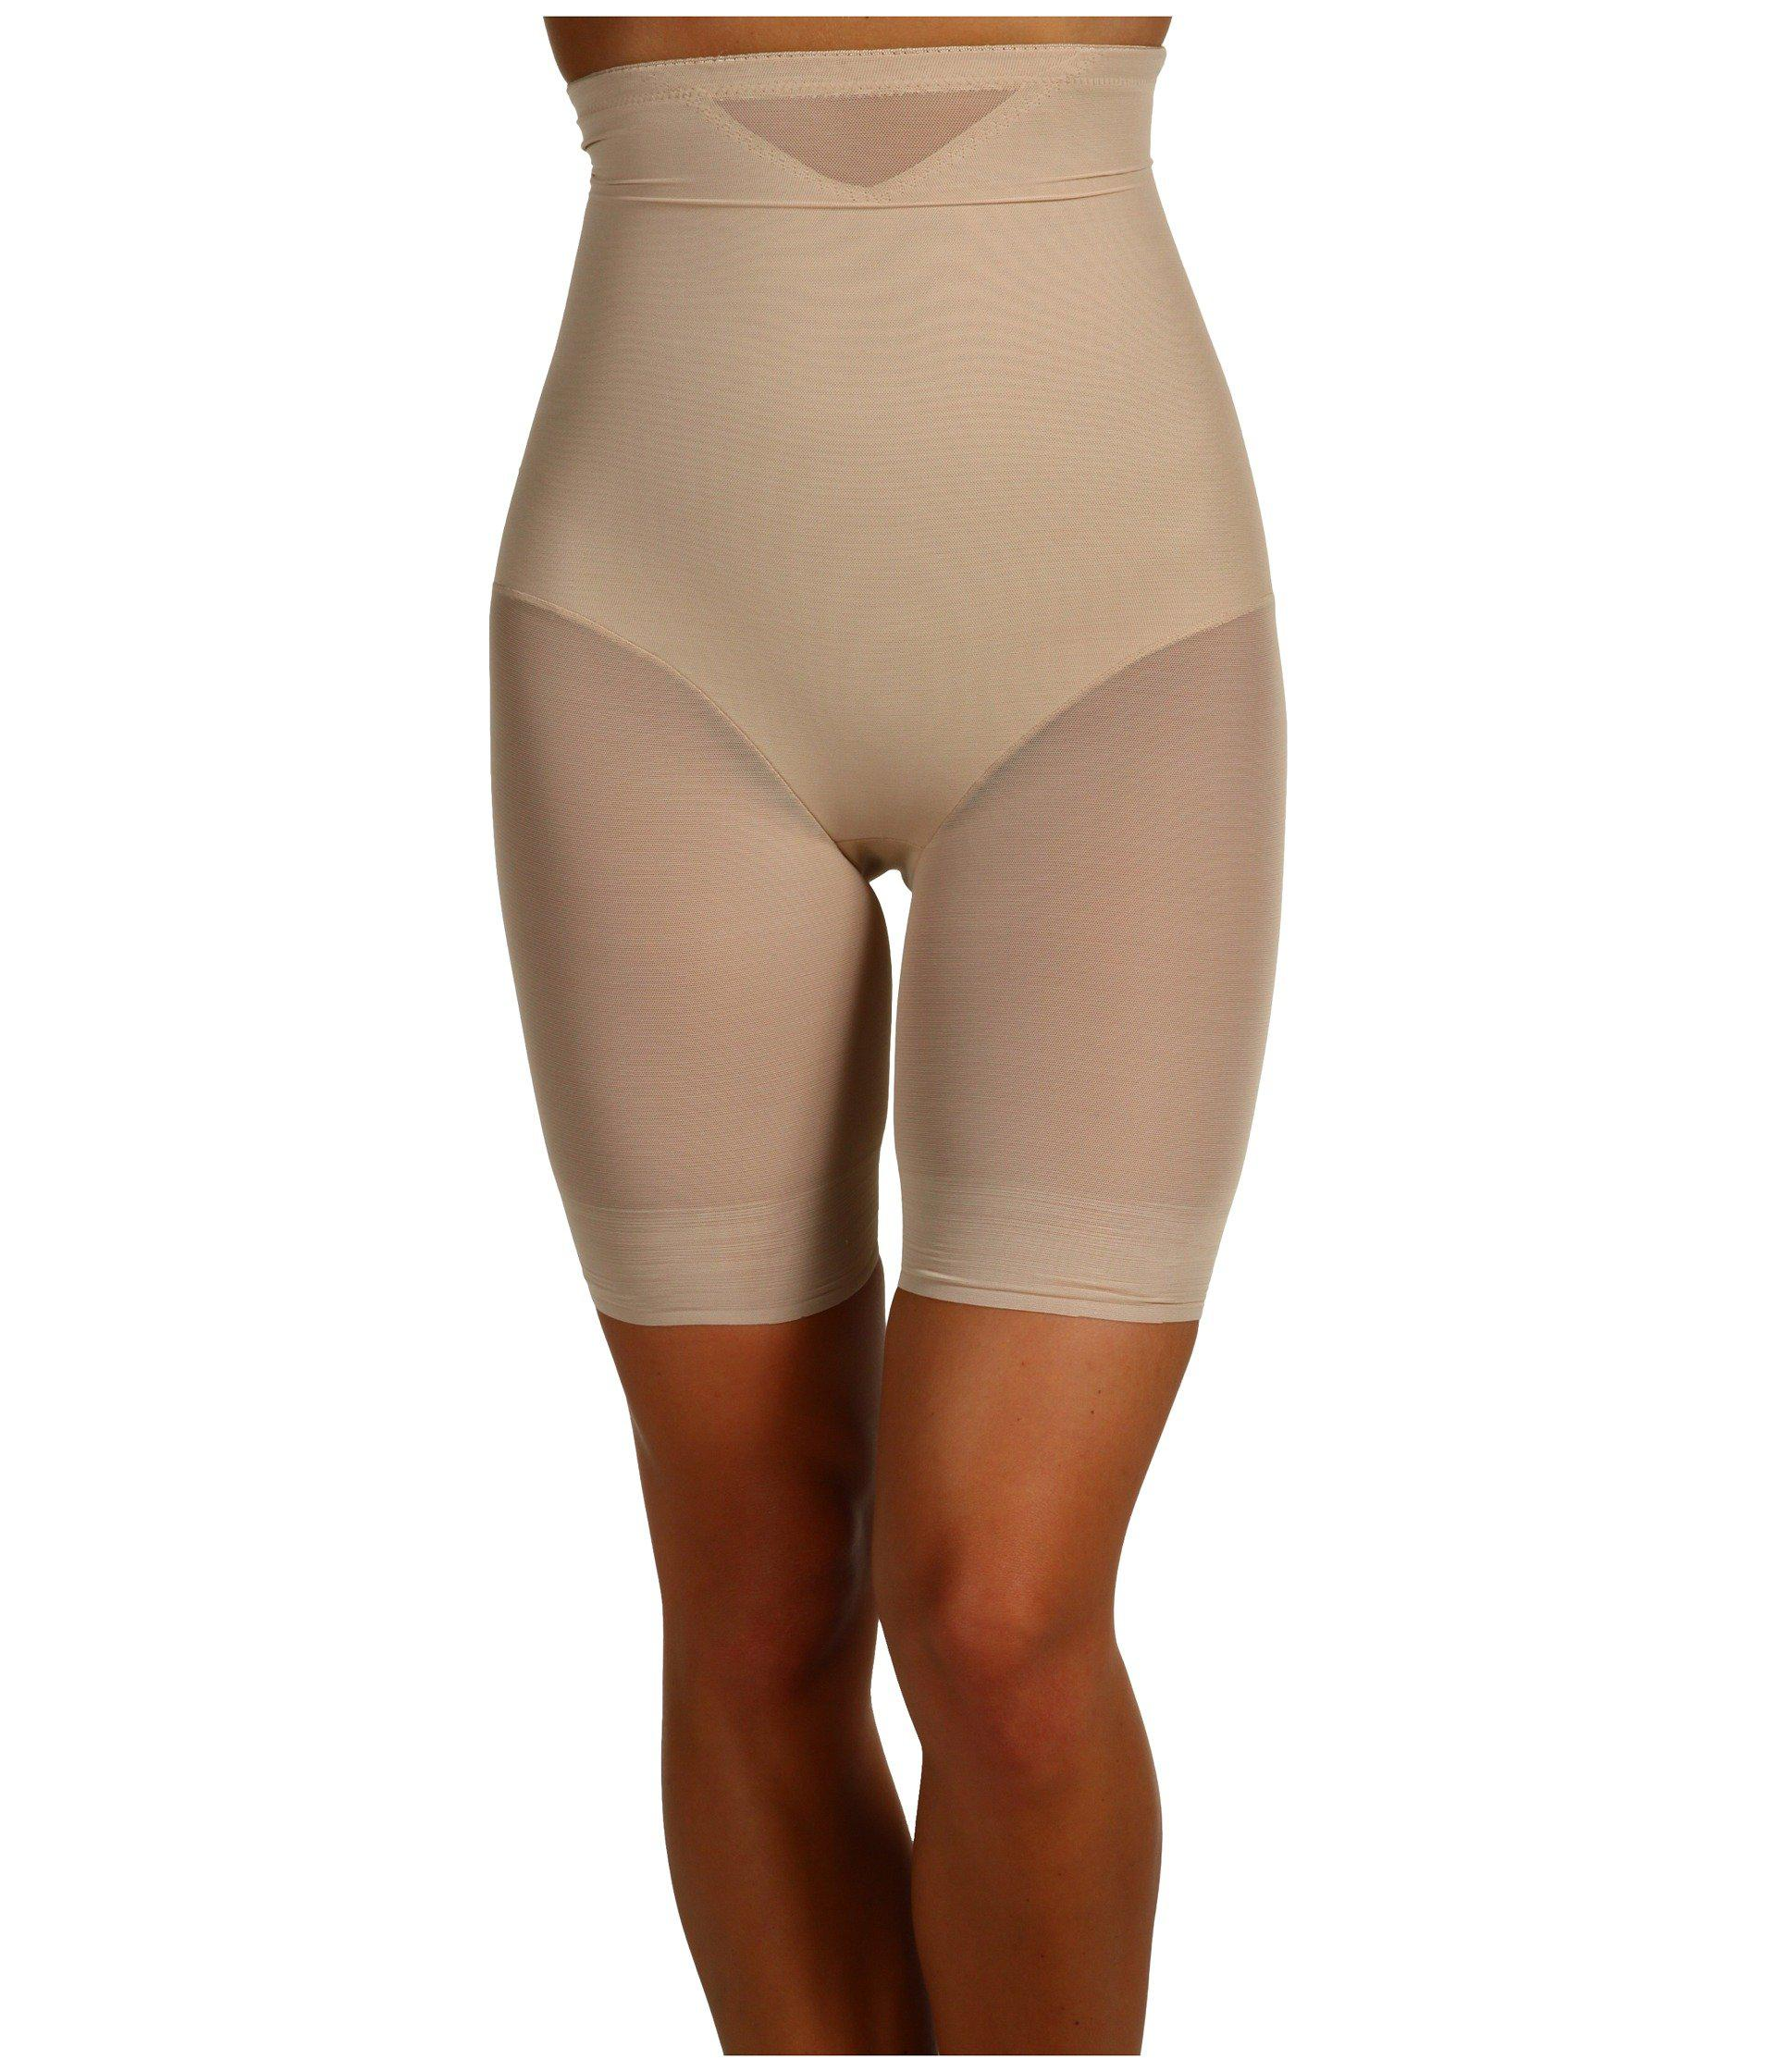 367dbaf5271bd Miraclesuit. Natural Extra Firm Sexy Sheer Shaping Hi-waist Thigh Slimmer  ...